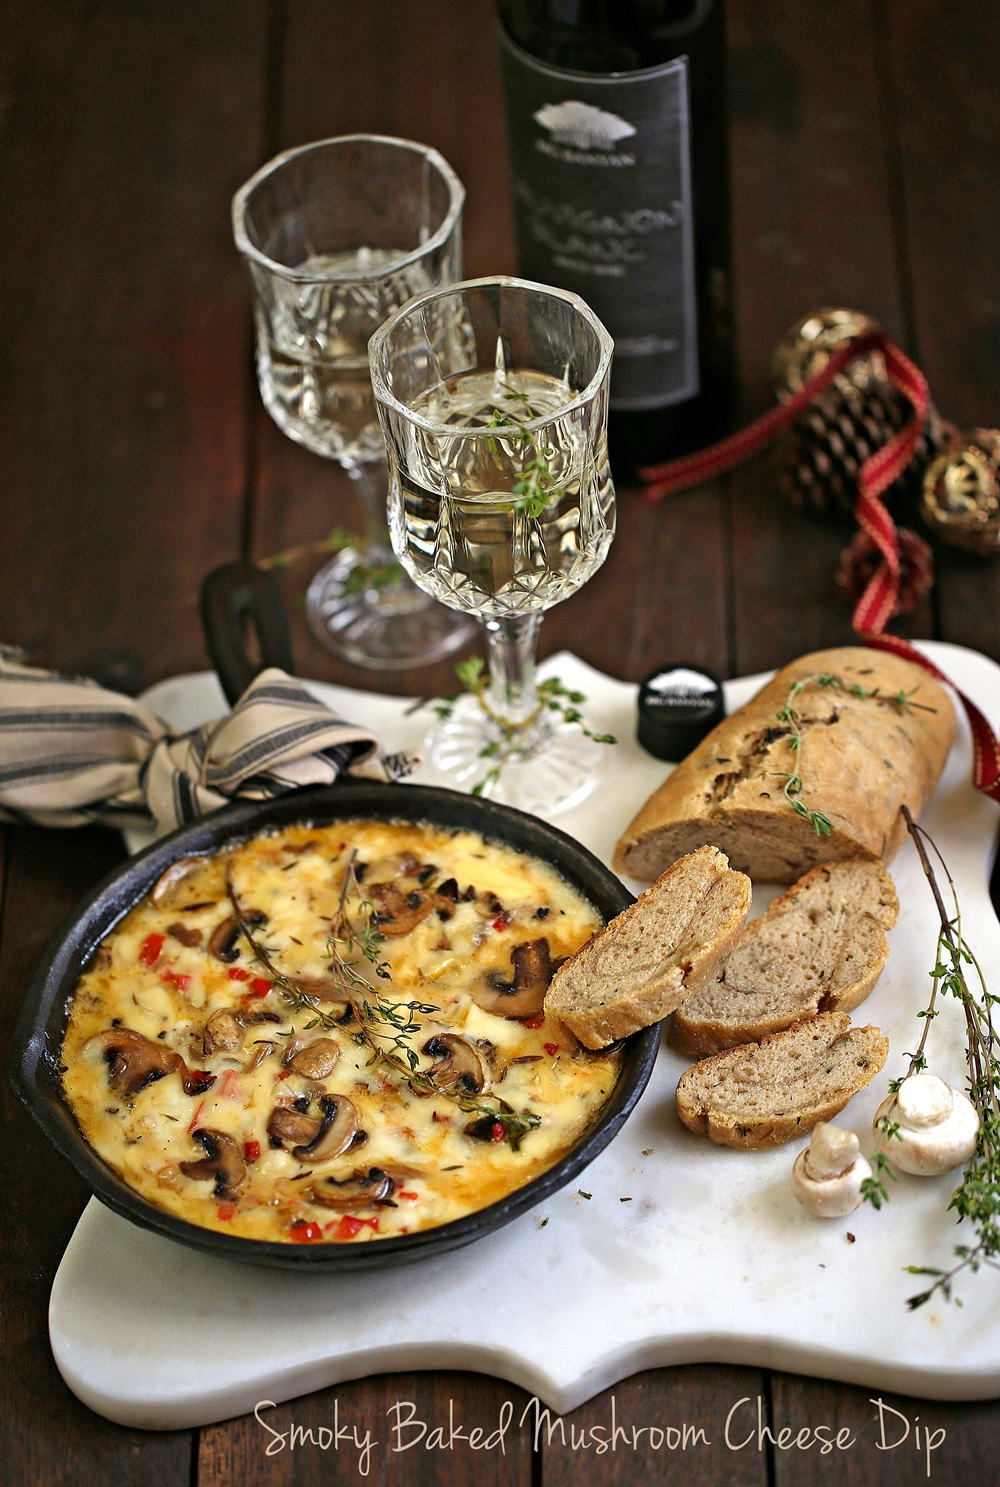 Smoky Baked Mushroom Cheese Dip - Passionate About Baking